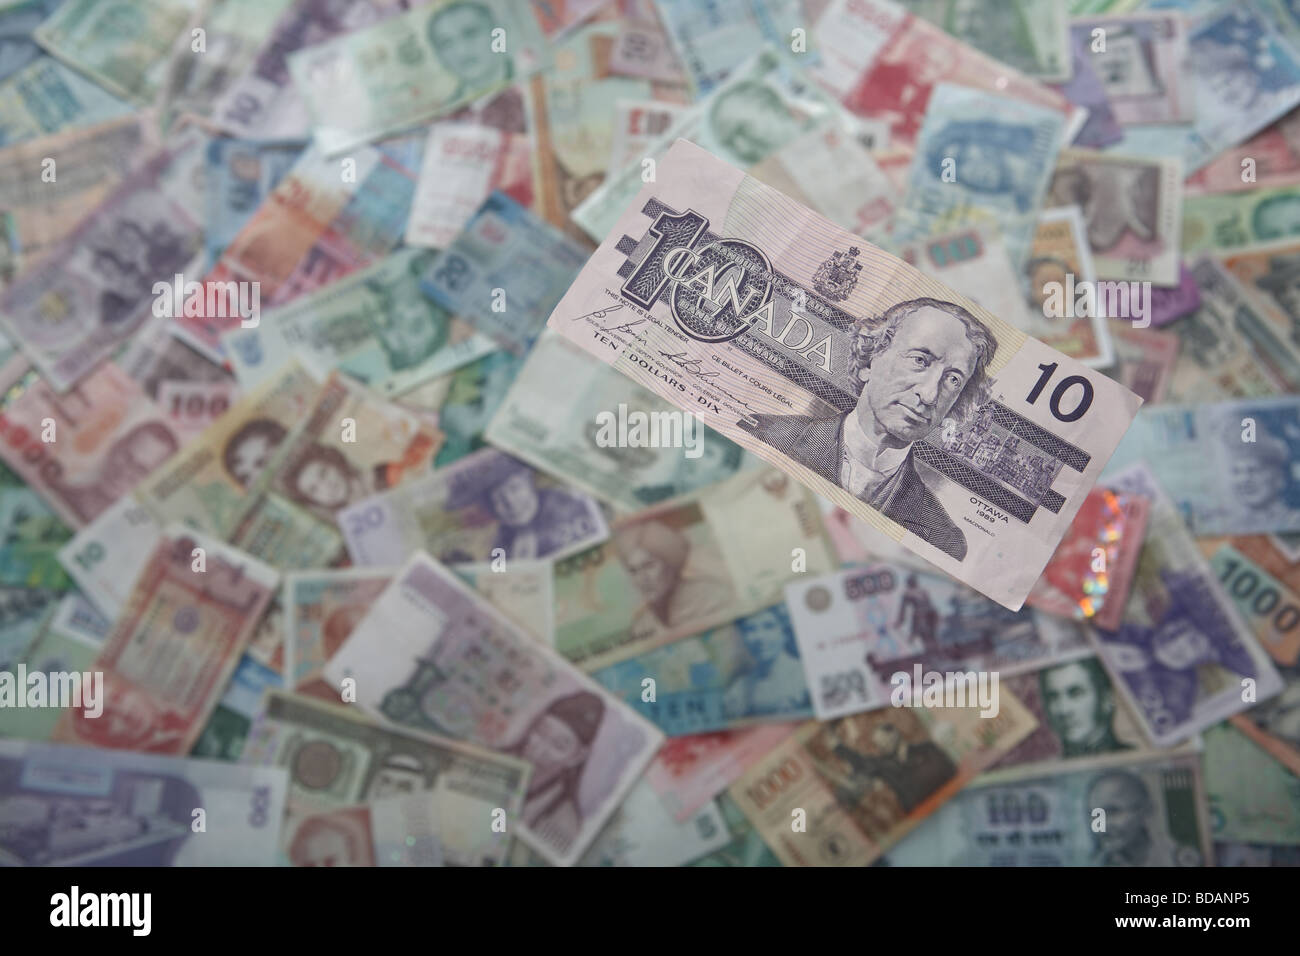 A Canadian Dollar on a soft background of international currencies - Stock Image